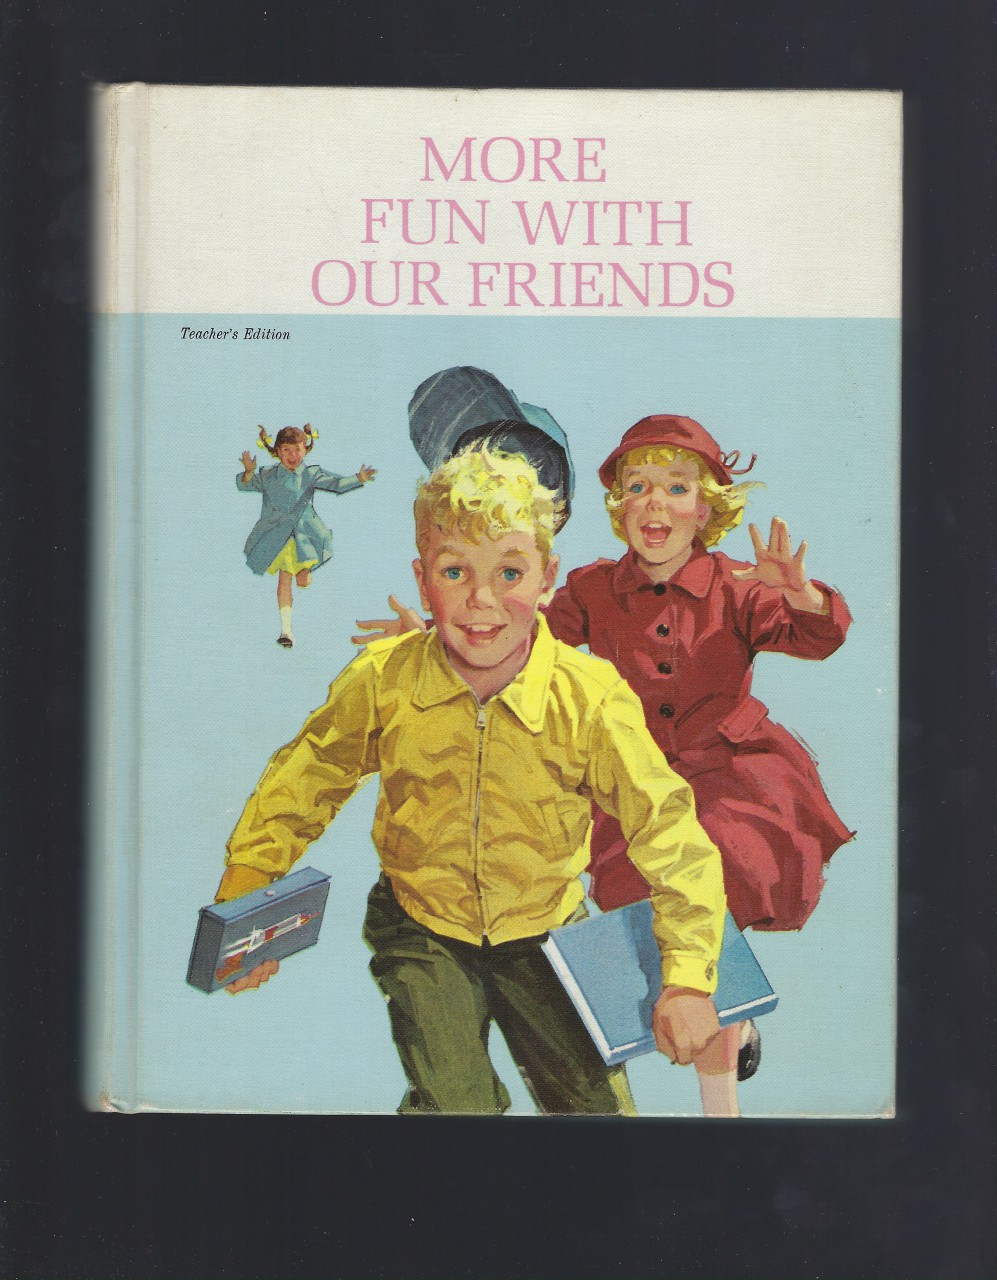 More Fun With Our Friends. Teacher's Edition 1962 Excellent, Marion Monroe, A. Steryl Artley Helen M. Robinson